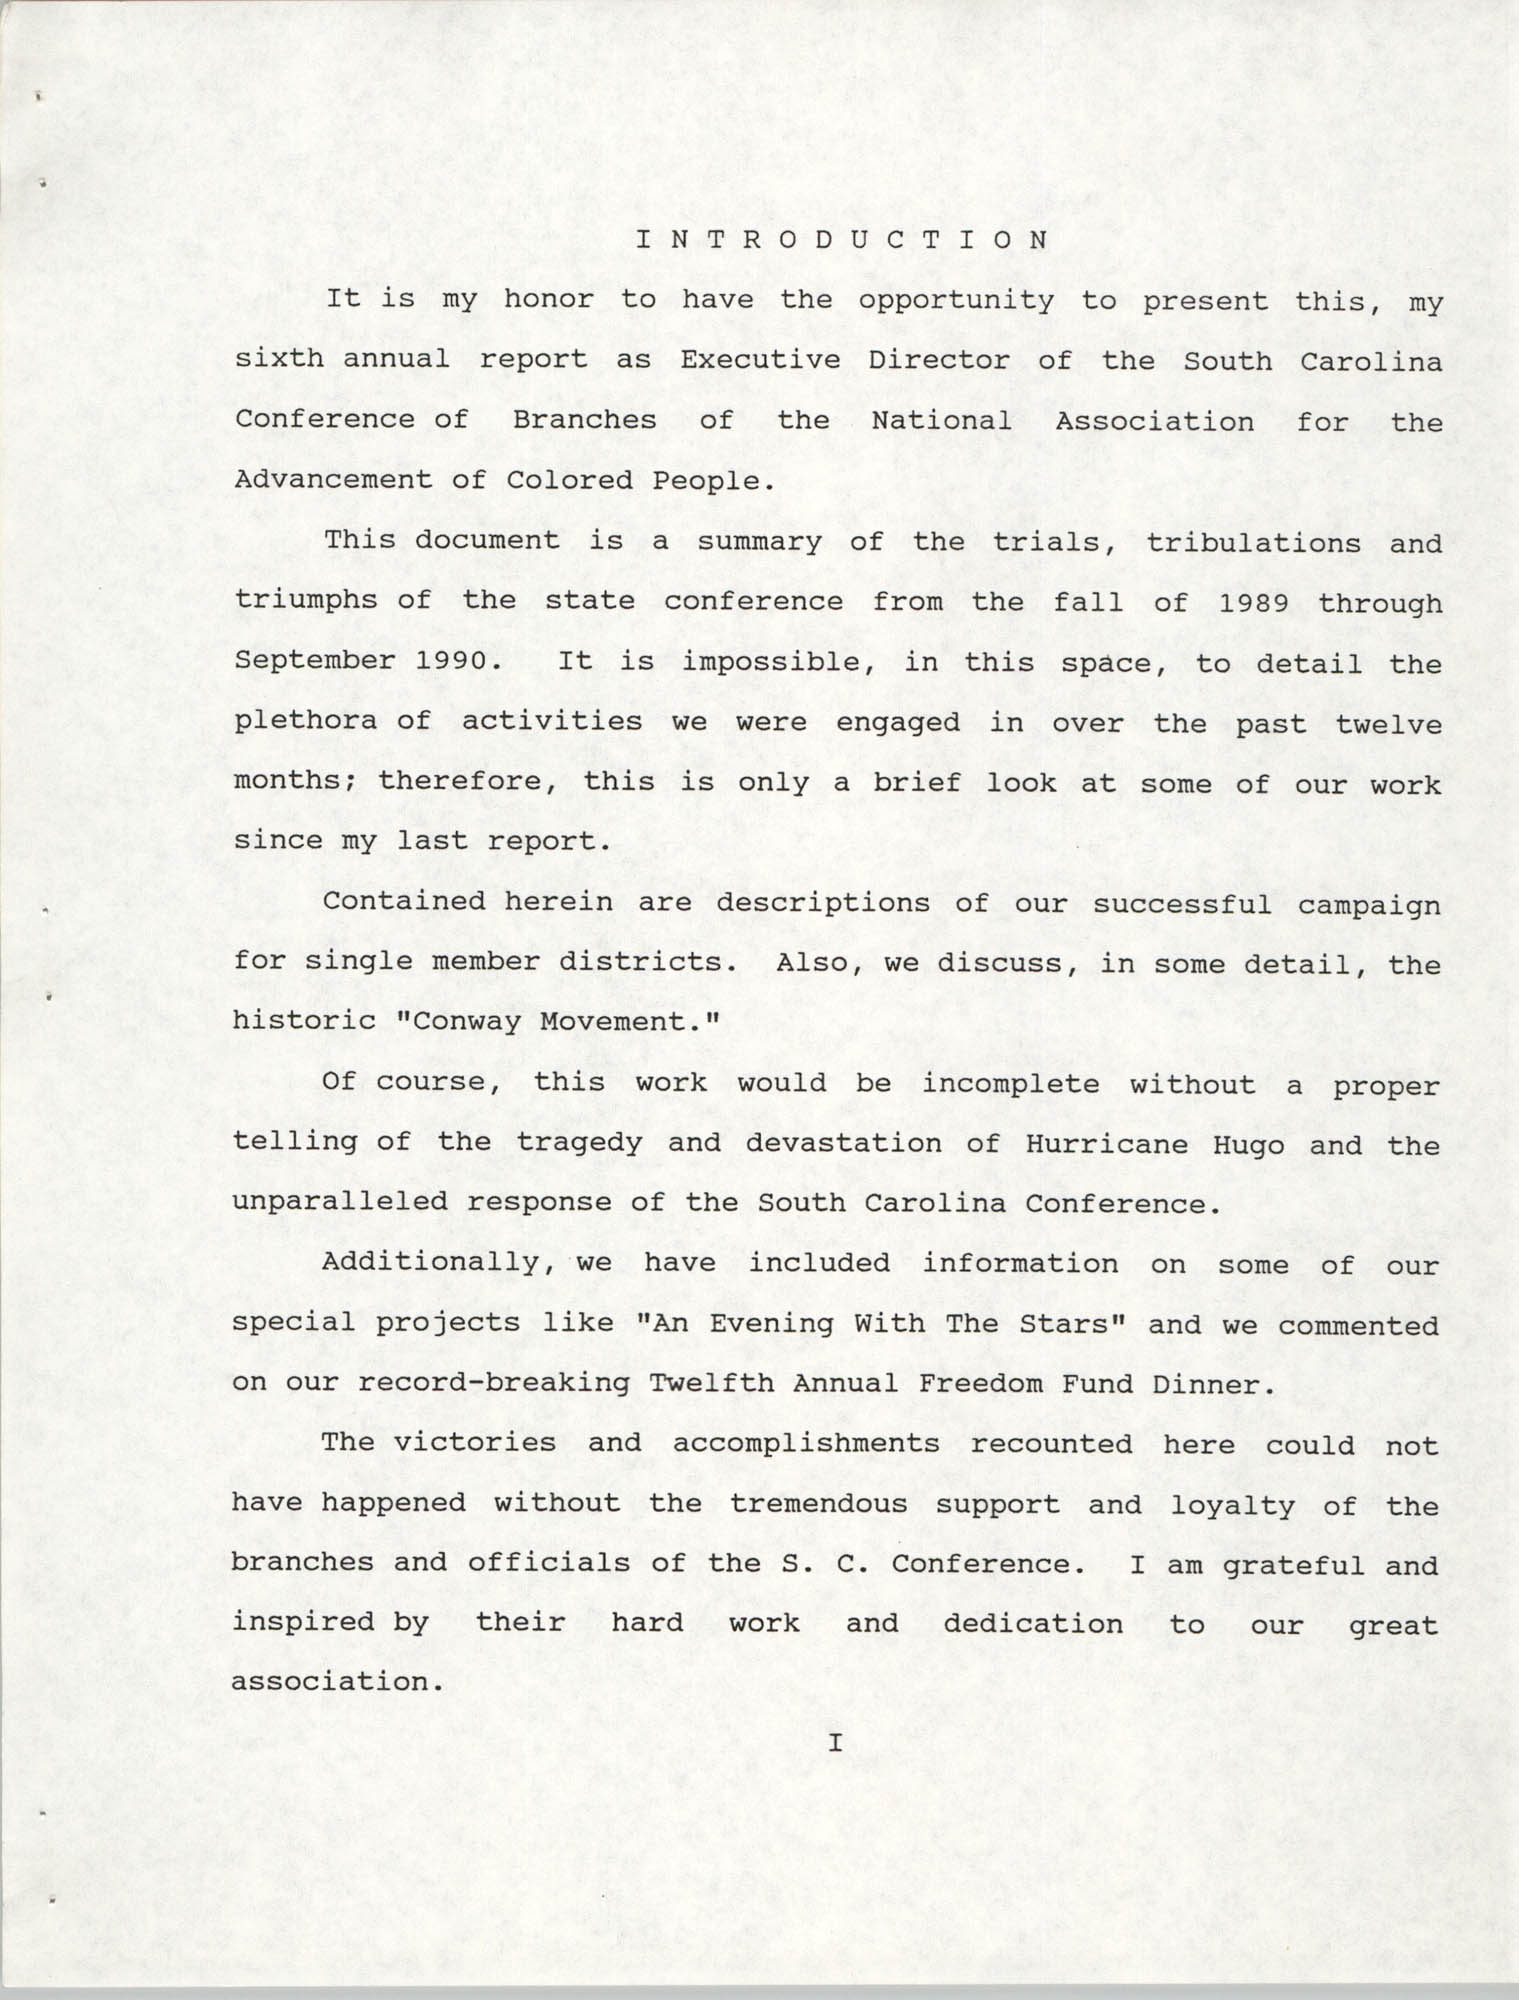 South Carolina Conference of Branches of the NAACP, 1990 Annual Report, Part One, Introduction Page 1